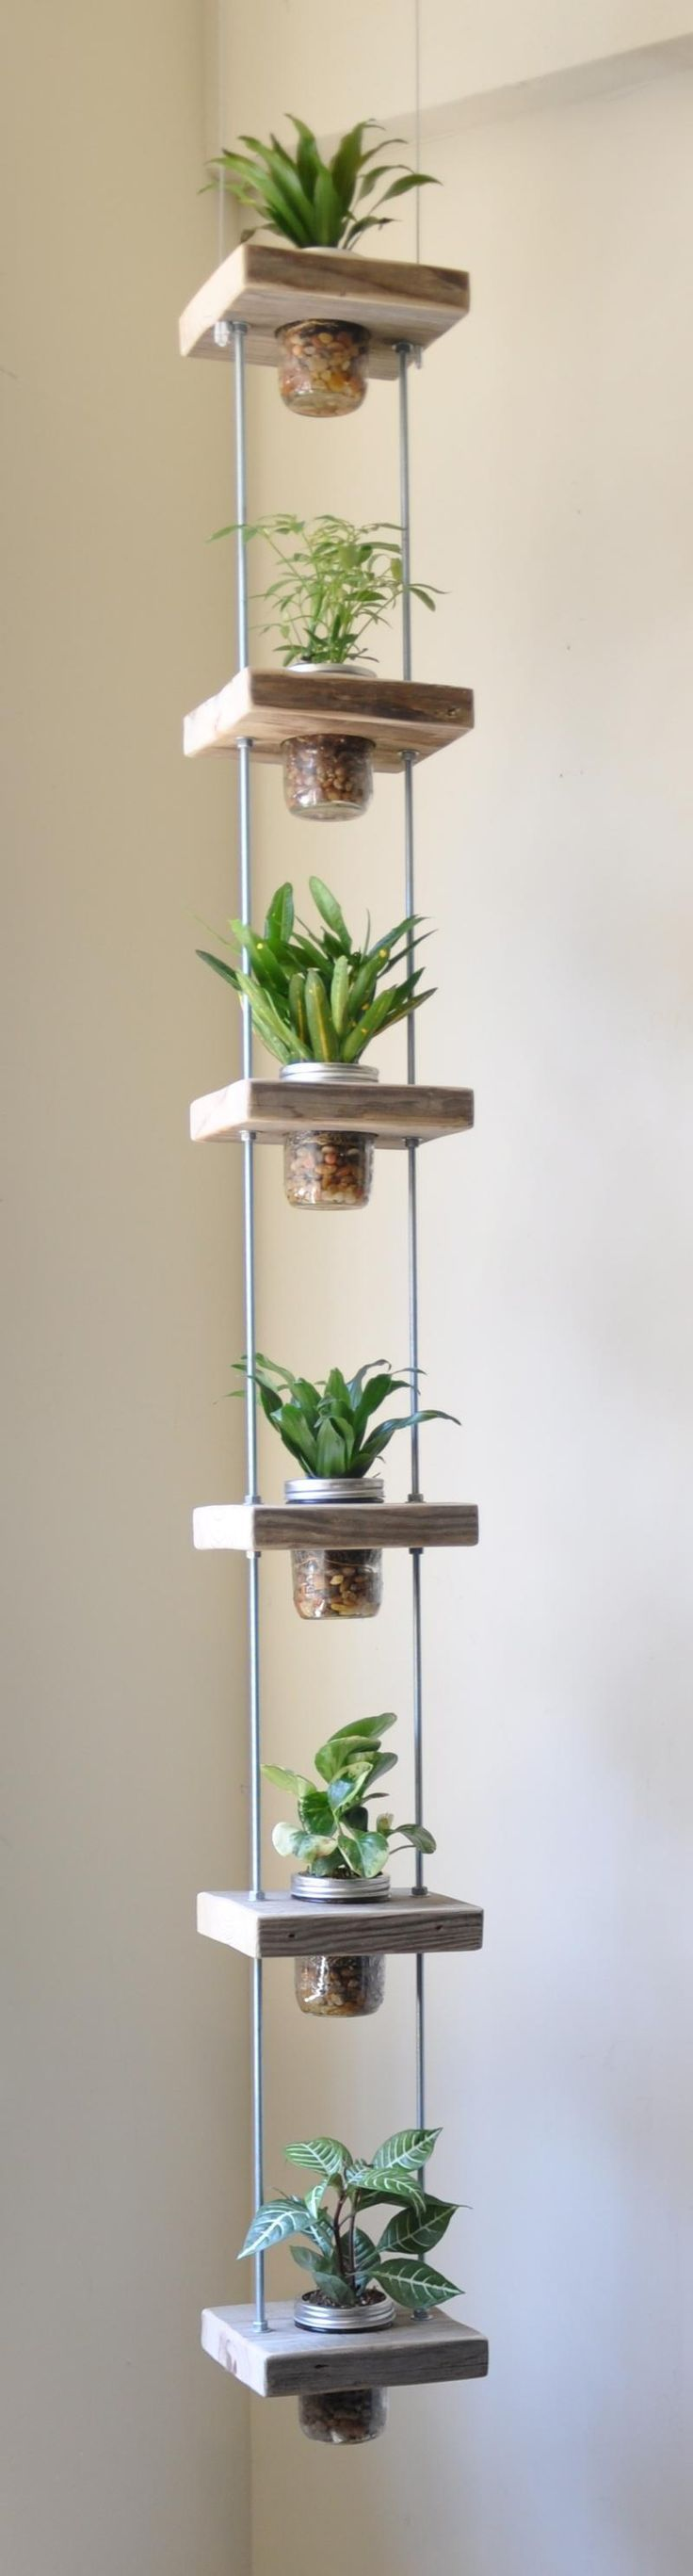 Don't have much space to grow your favorite plants? Try building a vertical garden like this one, designed by Susie Frazier. Using salvaged wood, threaded rods and bolts, and a handful of mason jars, you can construct a simple hanging planter to add a lot of green to your game. See original article for instructions.